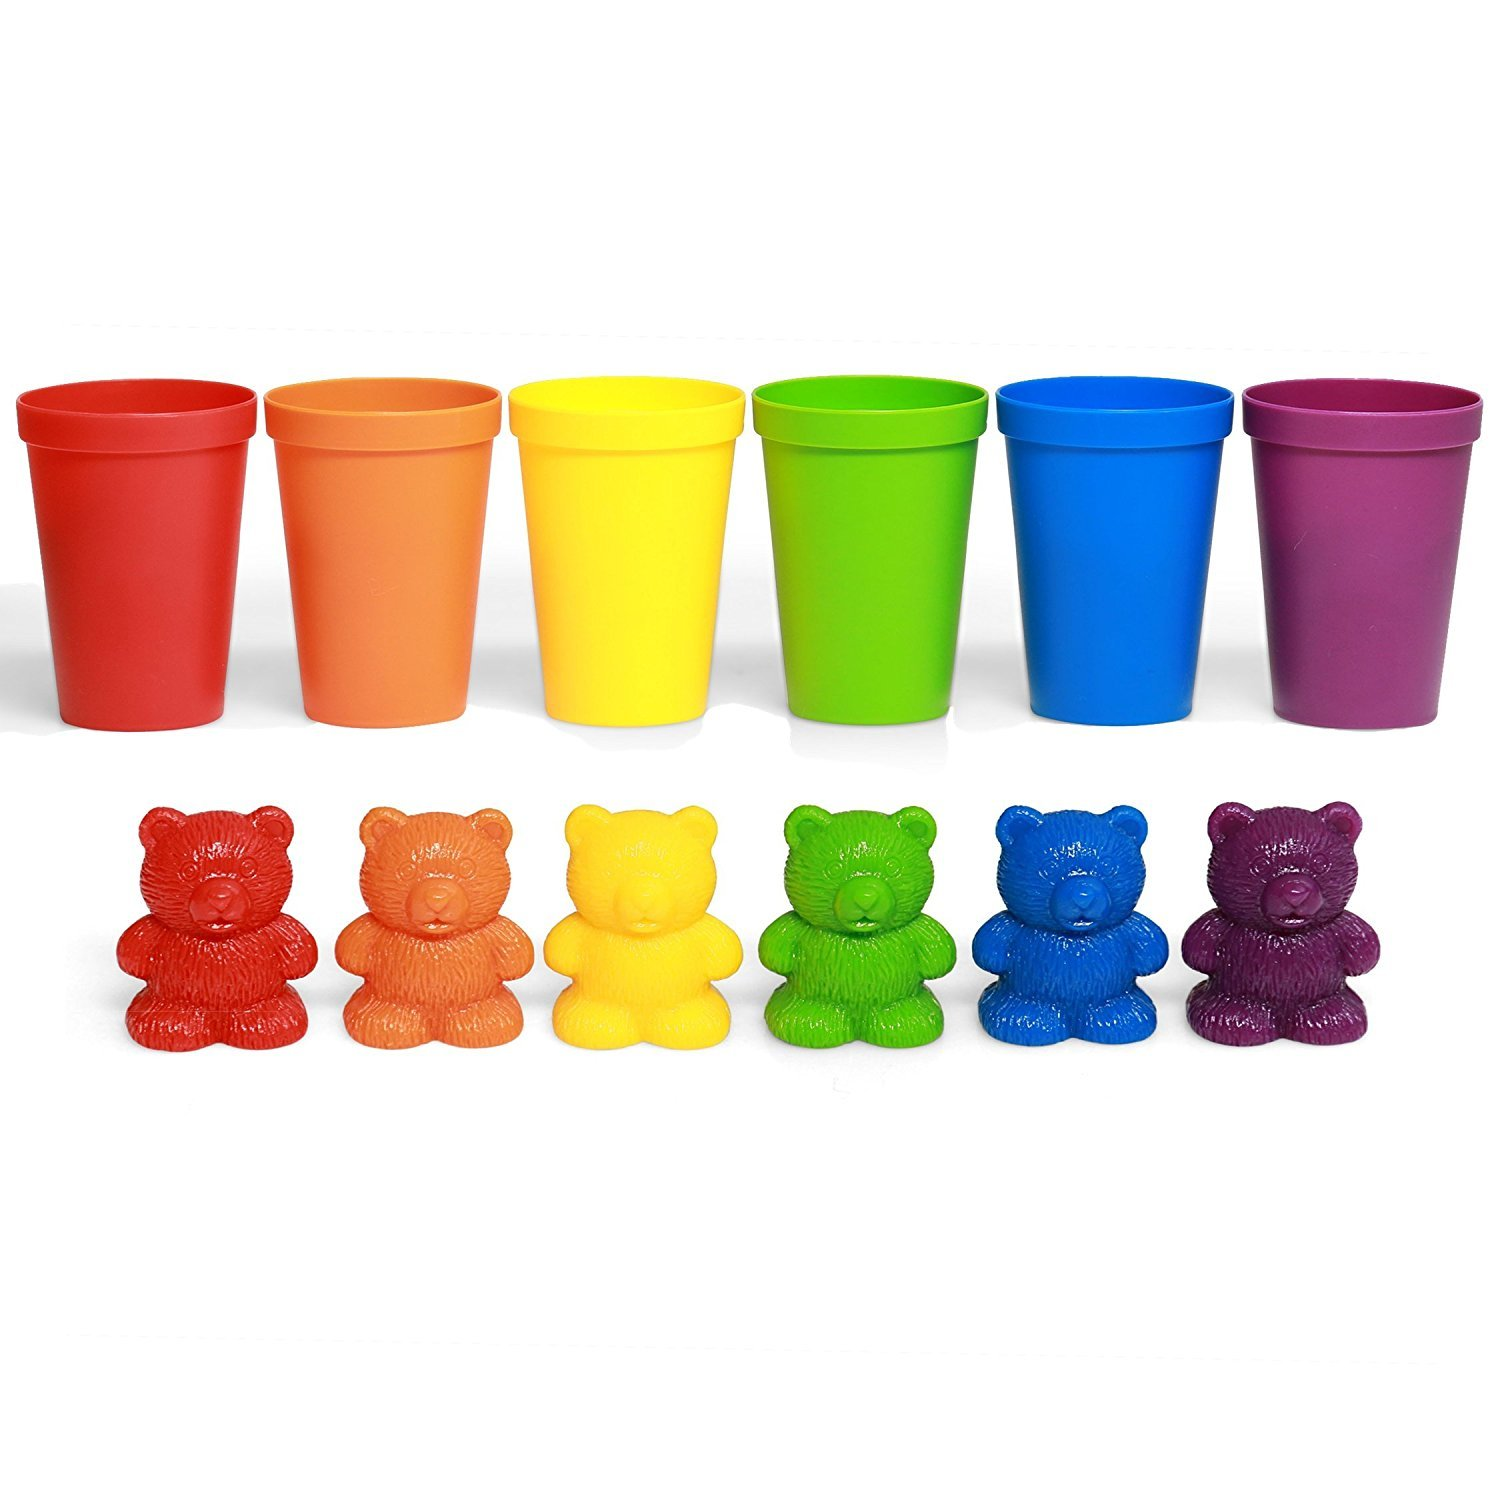 72 Rainbow Colored Counting Bears With Cups For Children